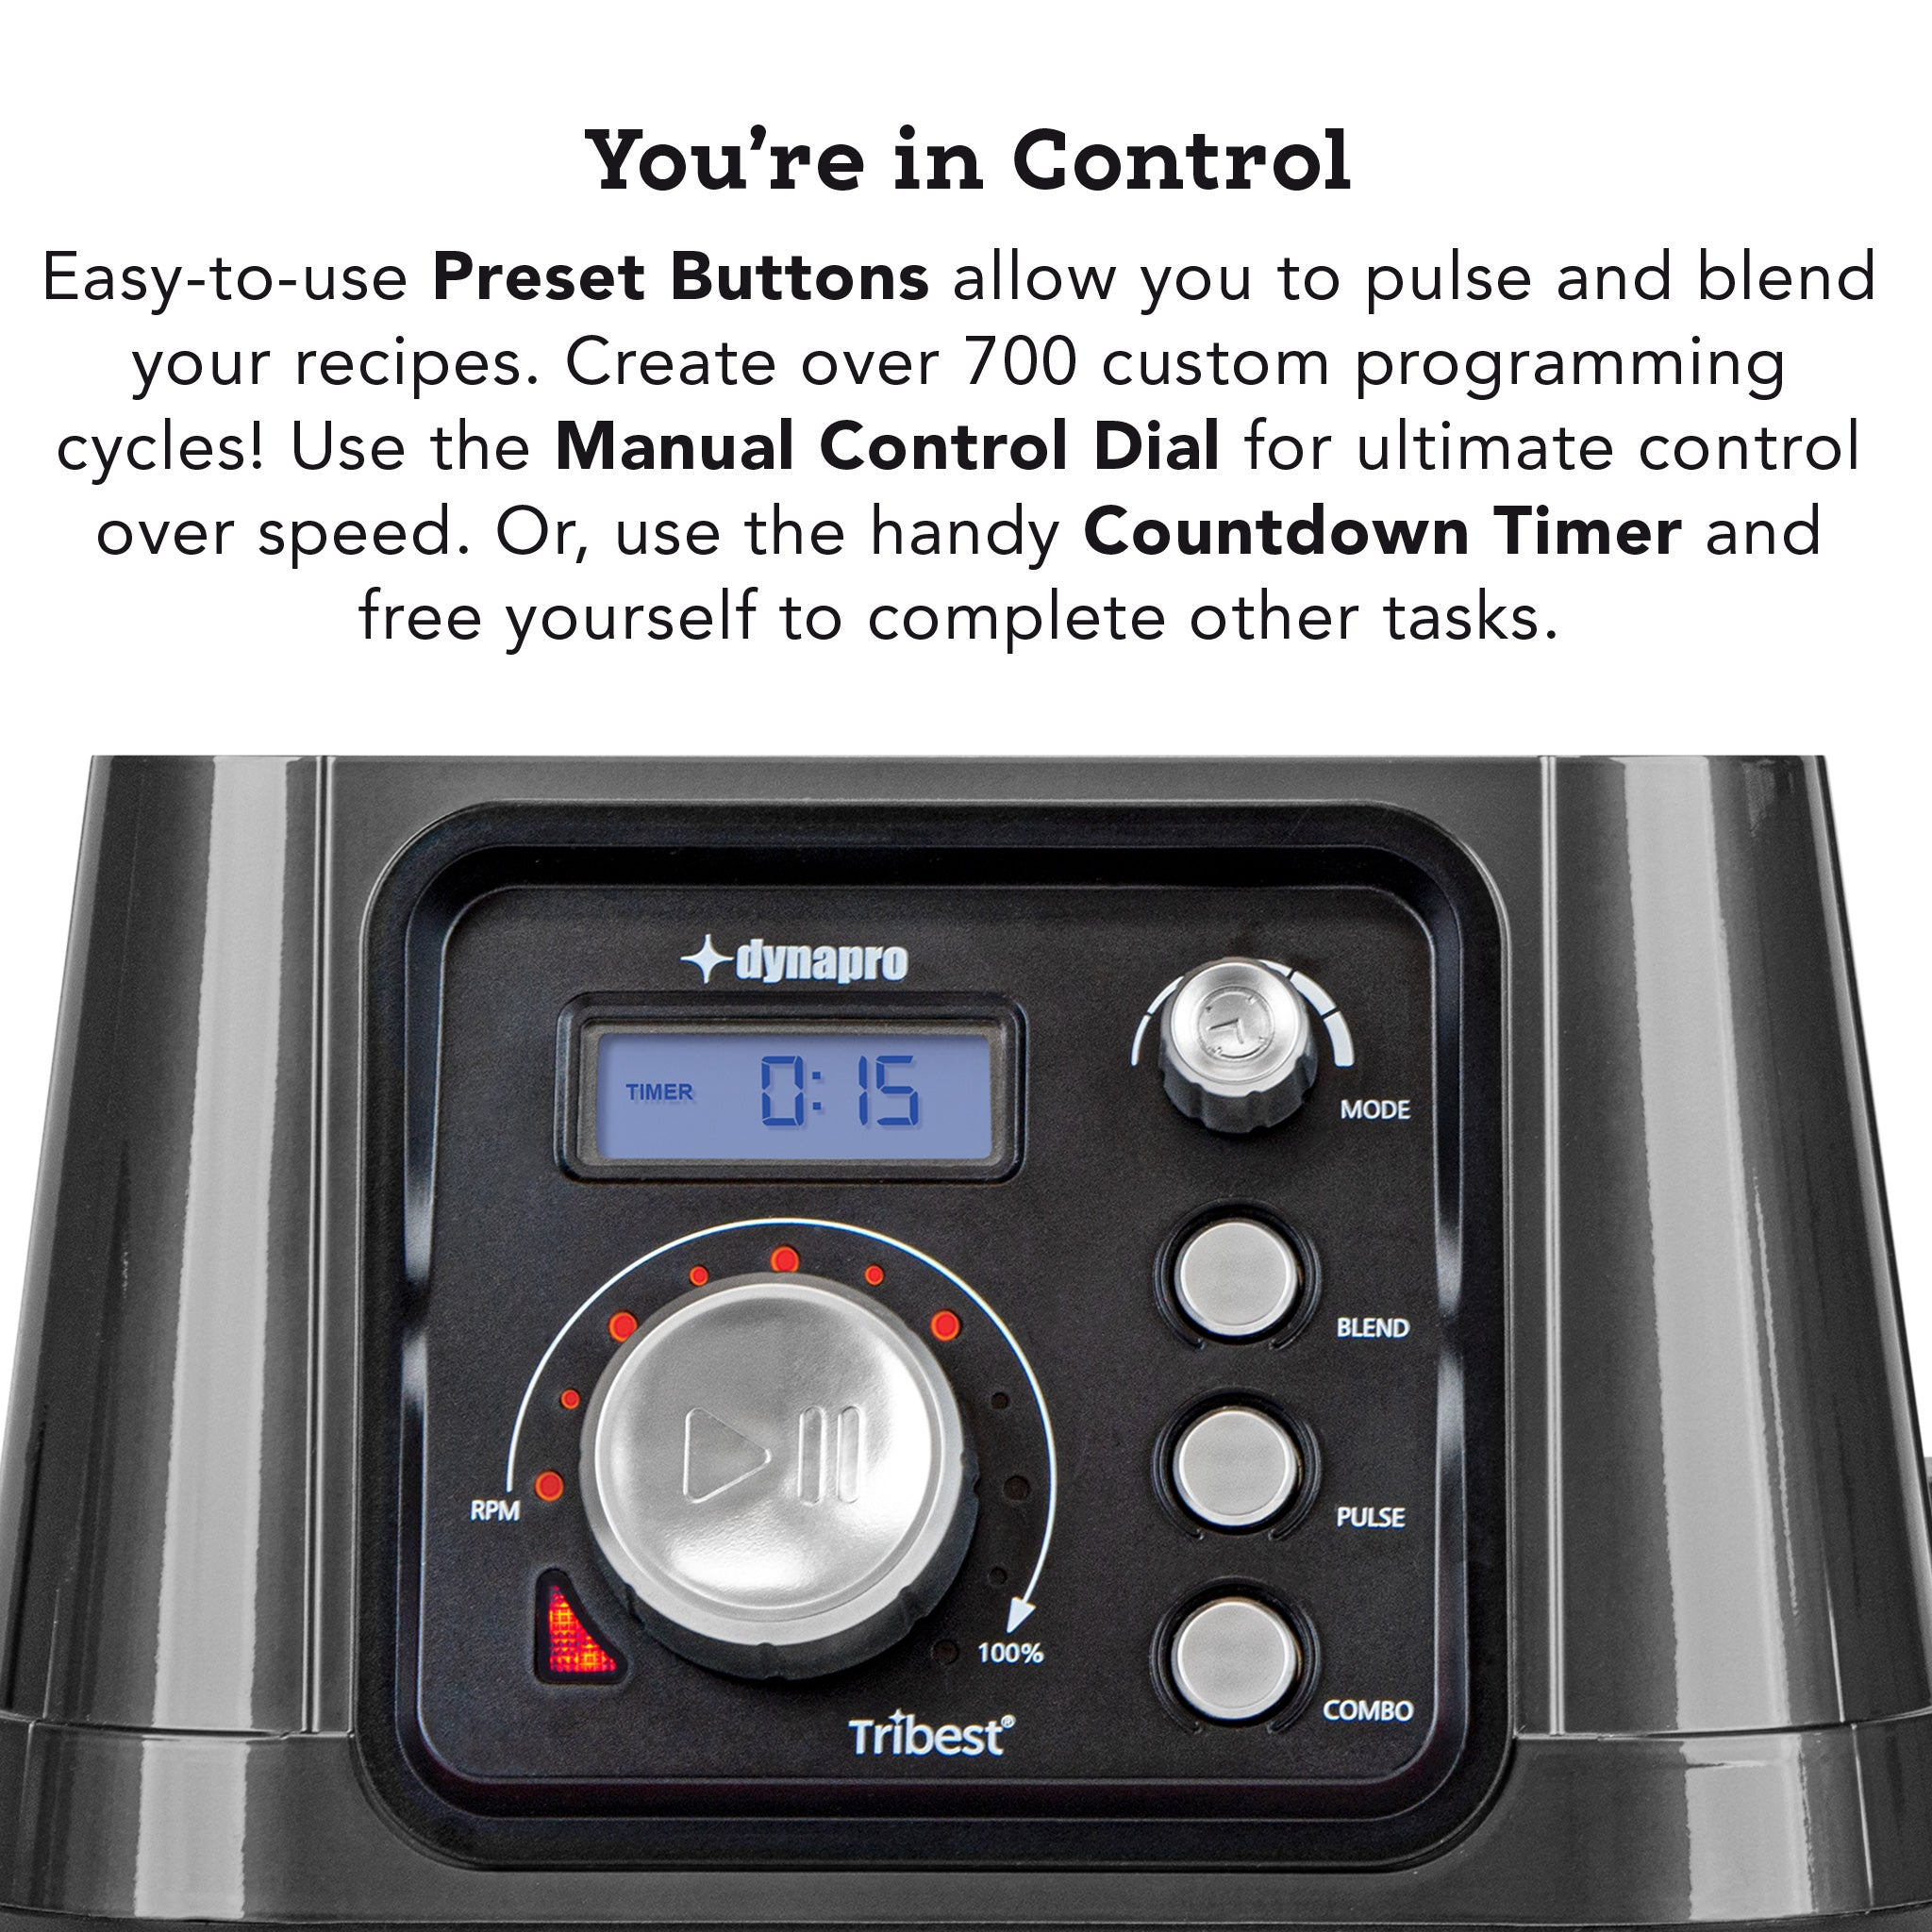 Dynapro® Commercial High-Speed Blender in Gray - Preset Controls